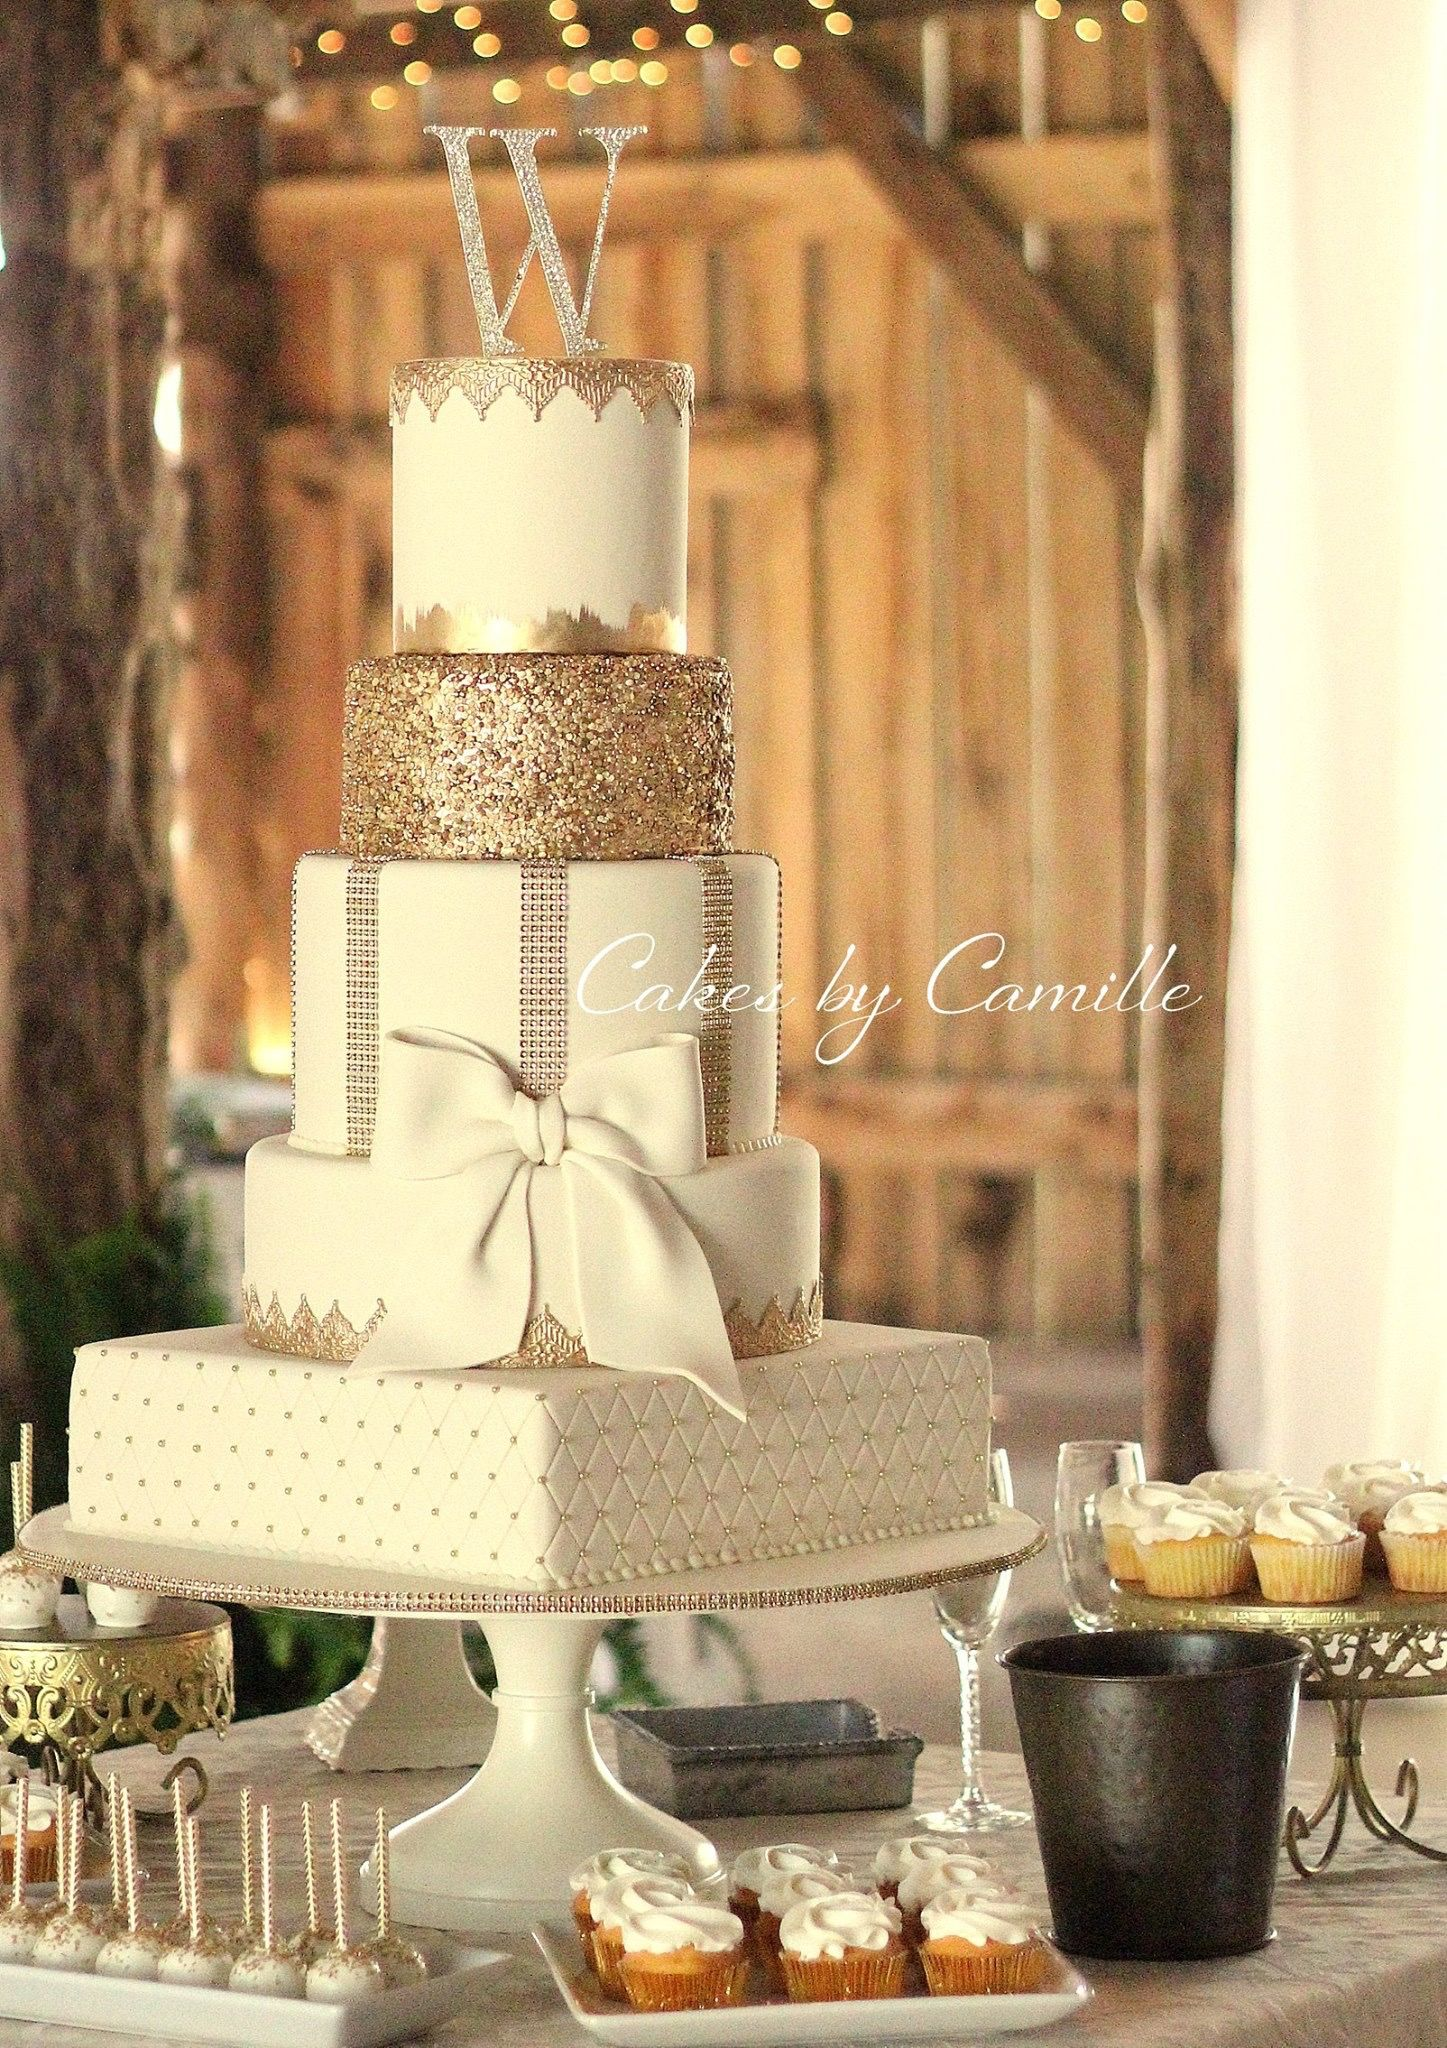 Pin by Kelly Harris on Butterfly Blossom Cakes | Pinterest | Wedding ...